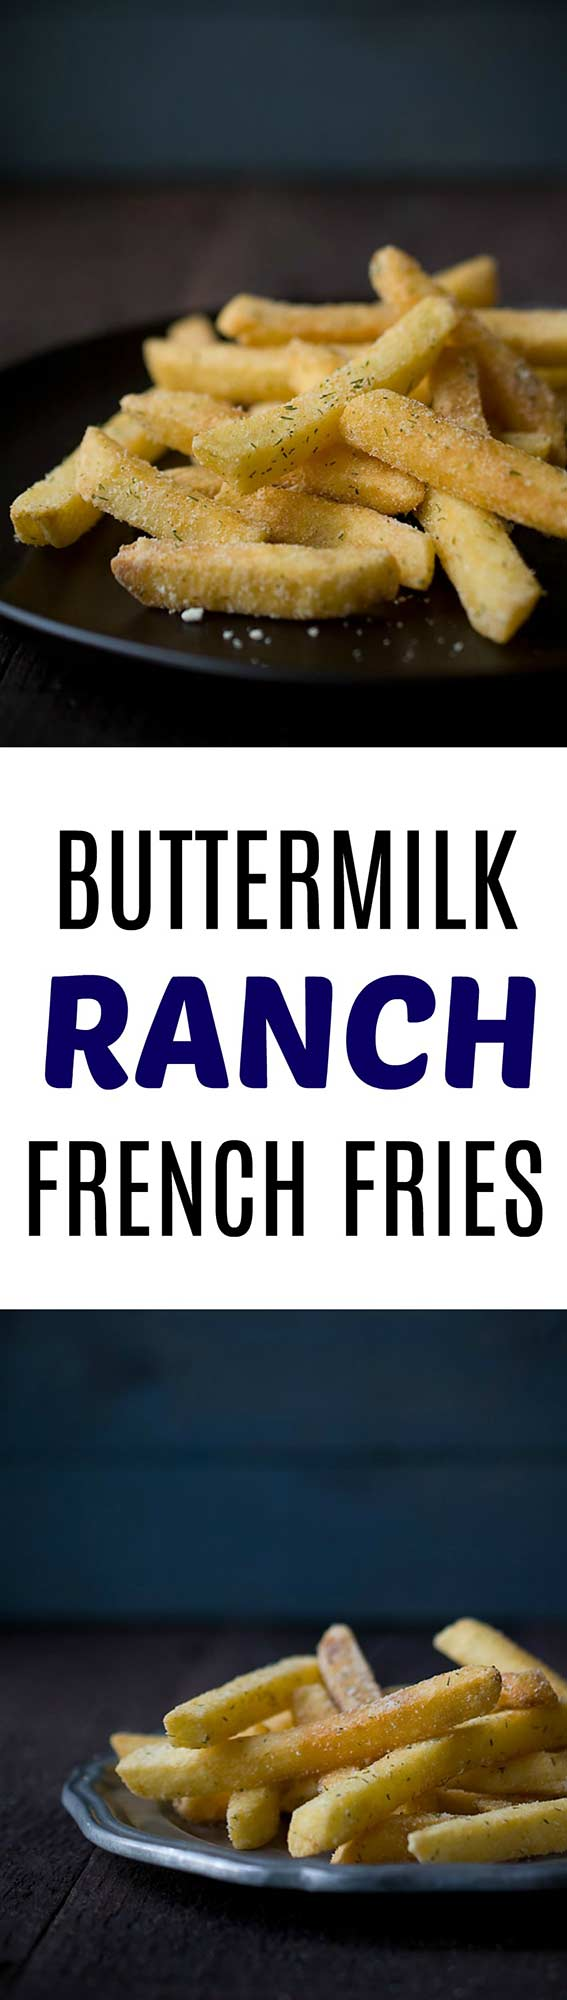 These buttermilk ranch french fries are a tasty side dish! If you love Cool Ranch Doritos, you NEED THEESE!